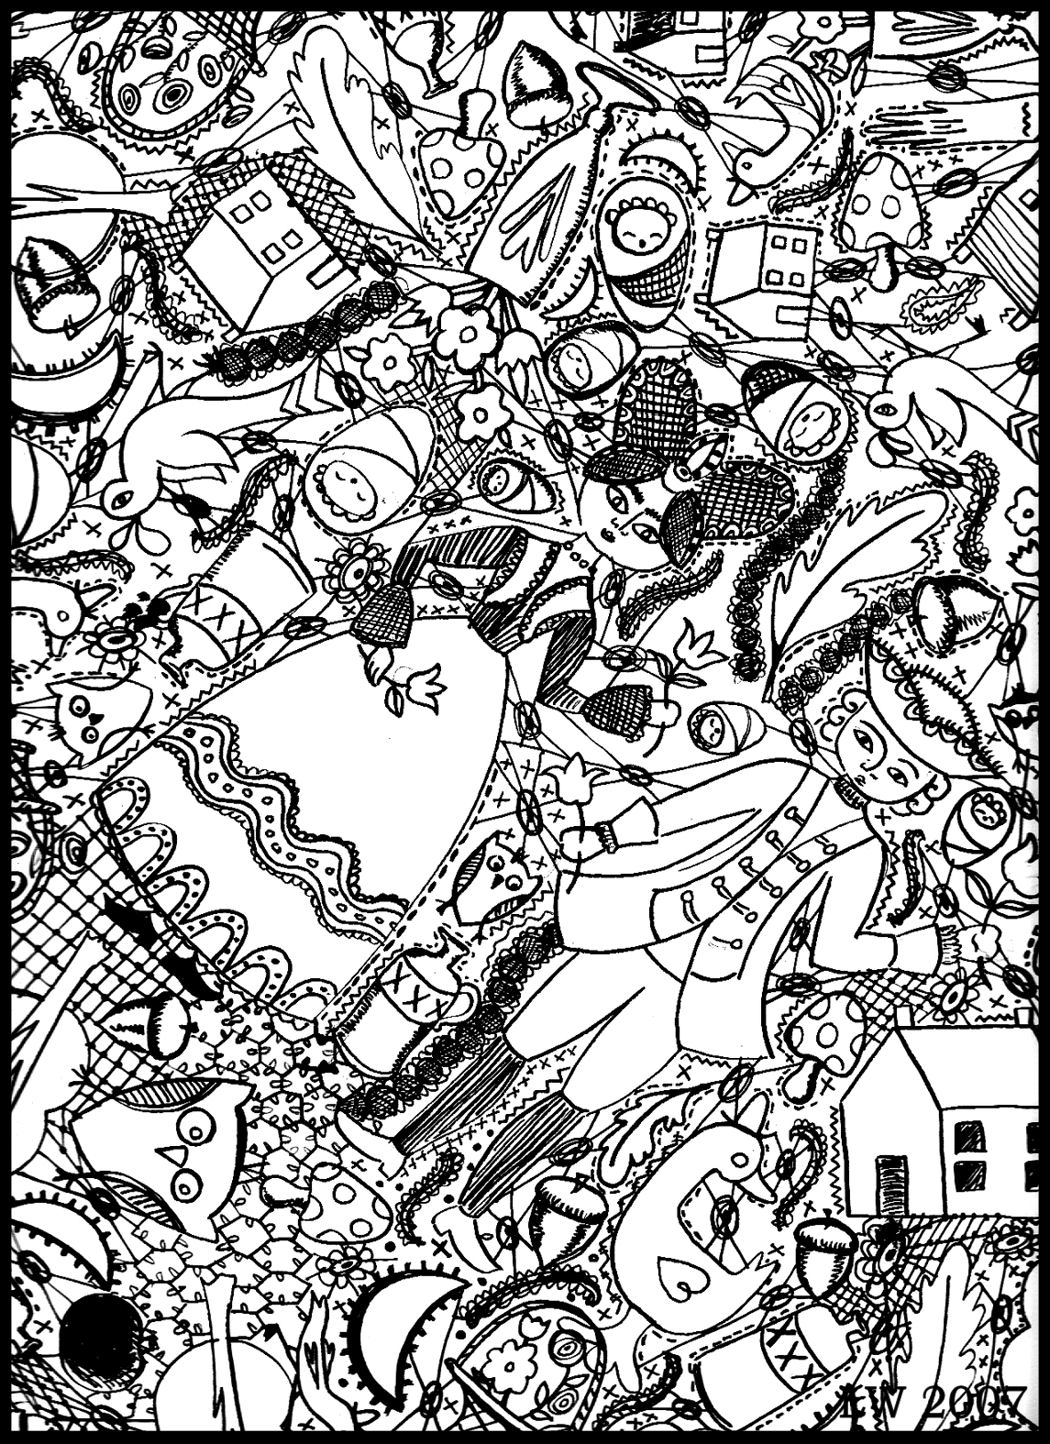 Epic Doodle Coloring Pages 39 On Picture Coloring Page With Doodle